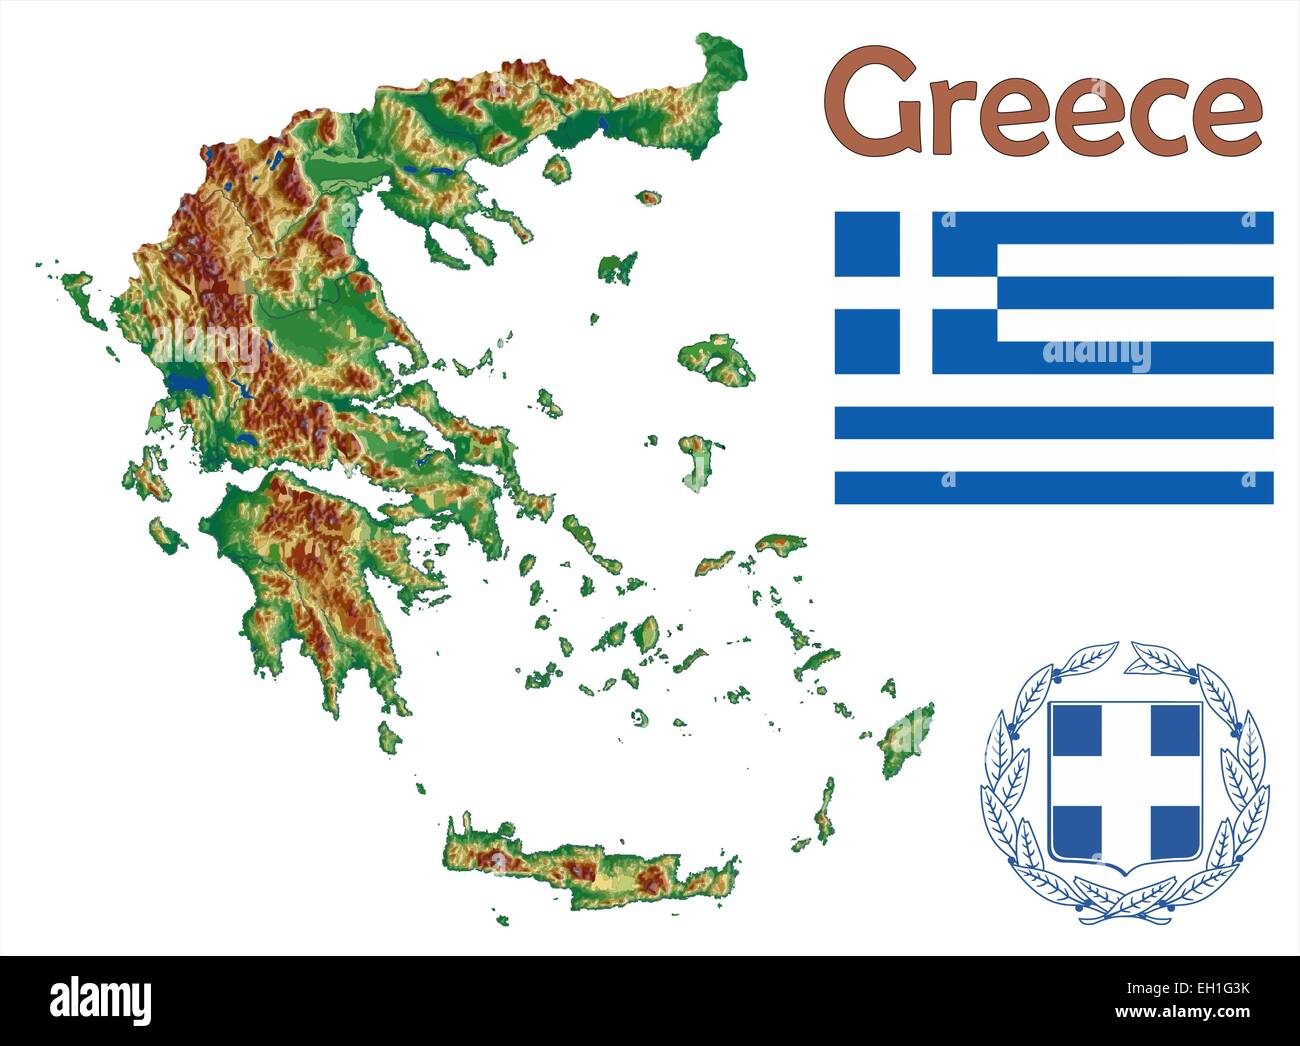 Map Of Greece Stock Photos & Map Of Greece Stock Images - Alamy